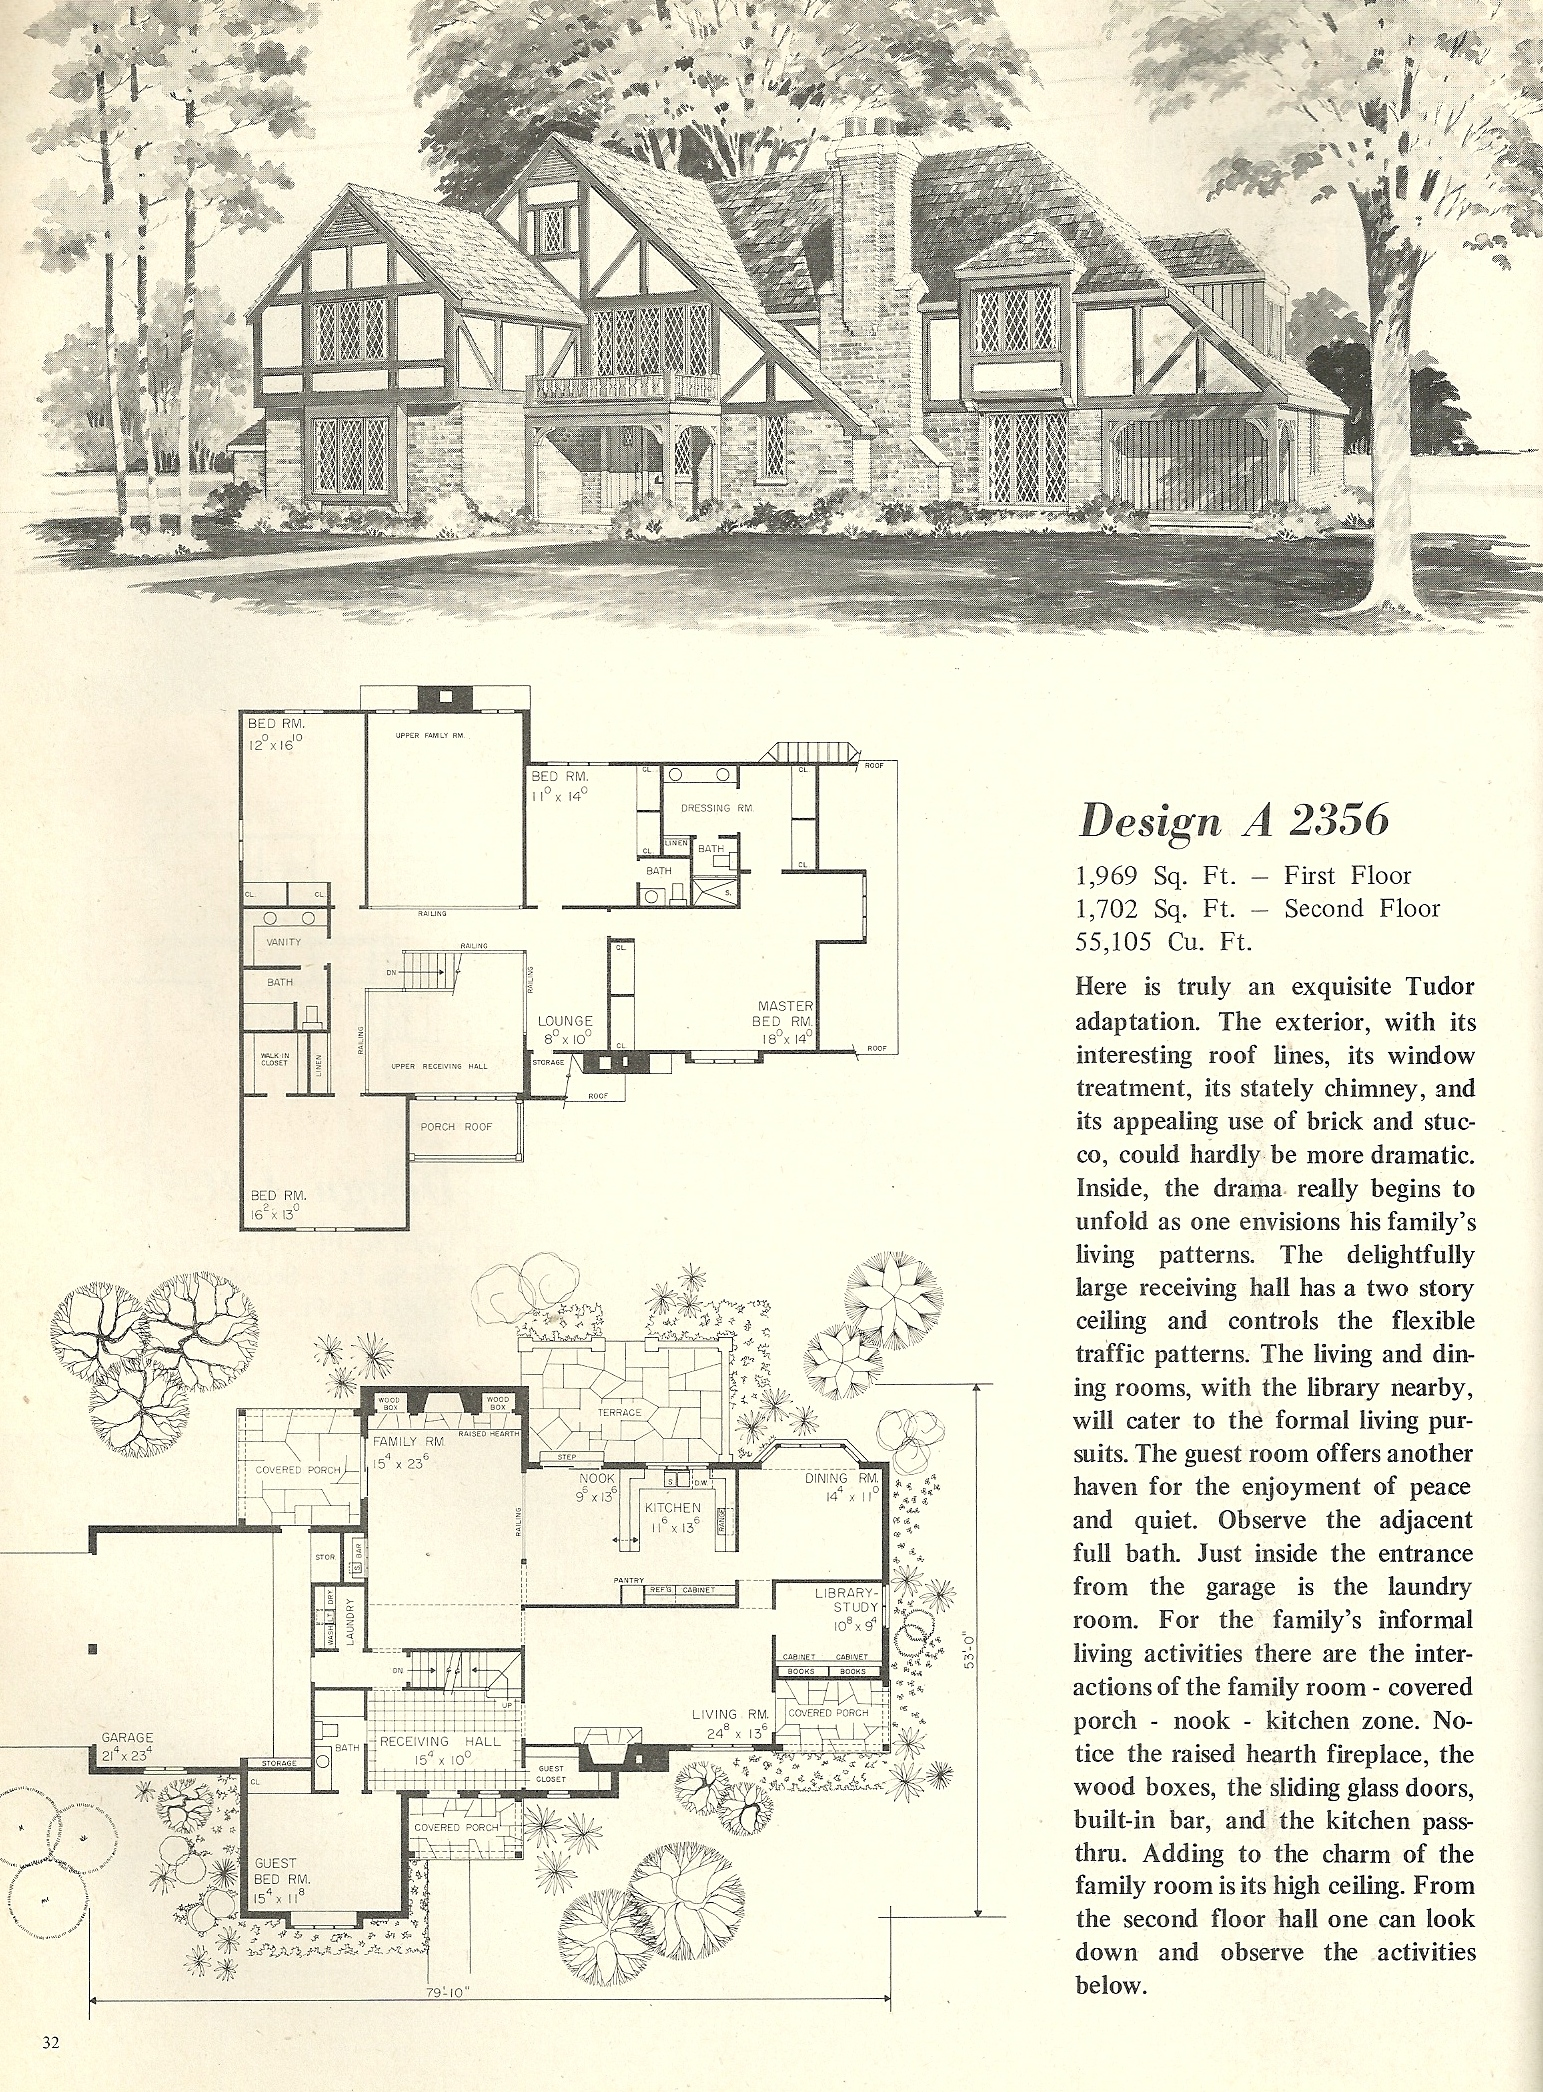 Vintage house plans 2356 antique alter ego for House blueprints